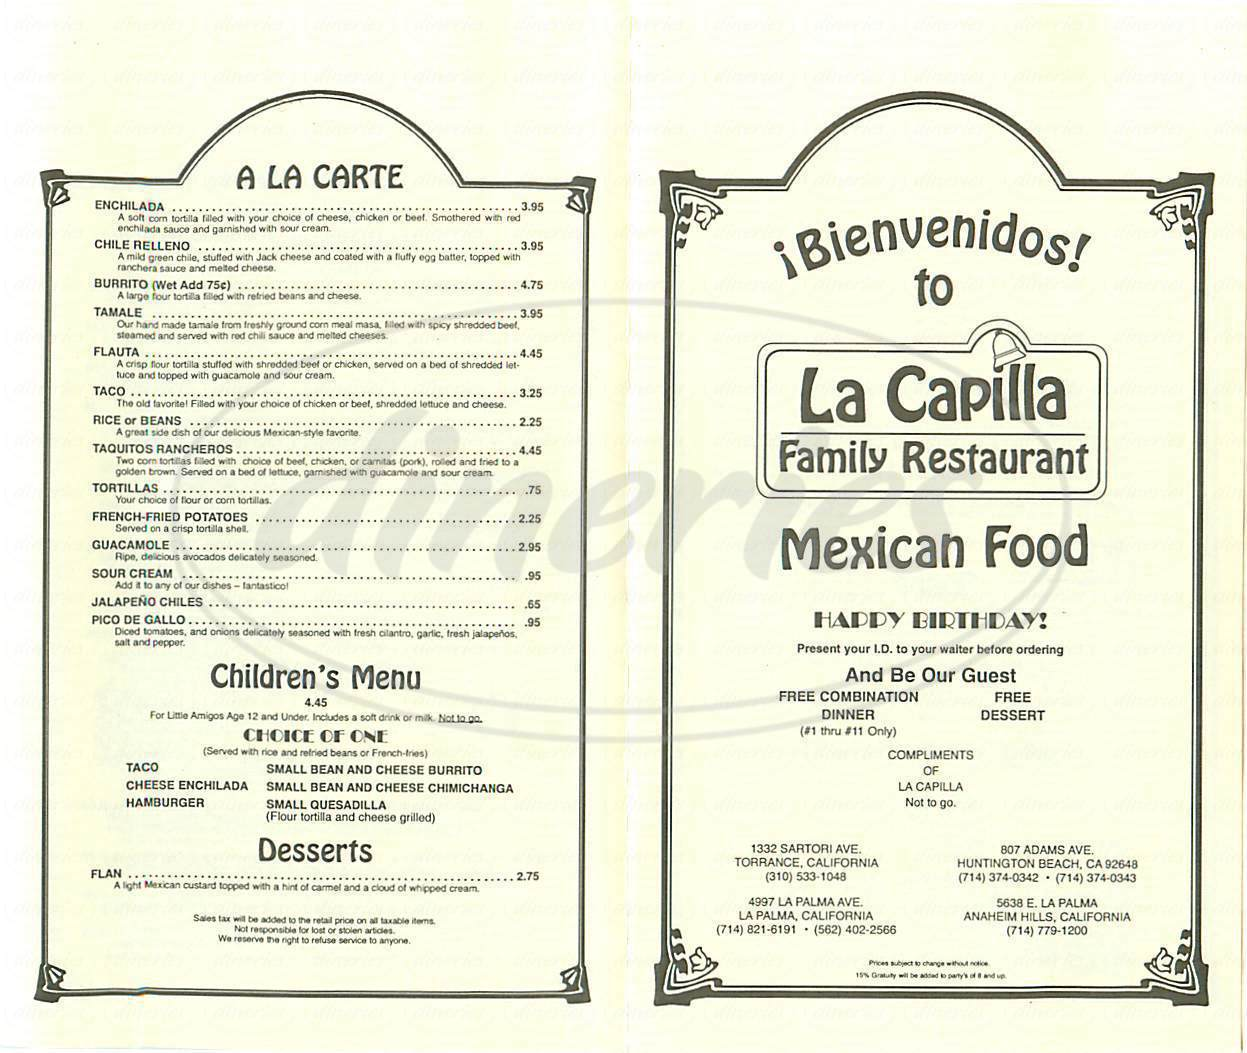 menu for La Capilla